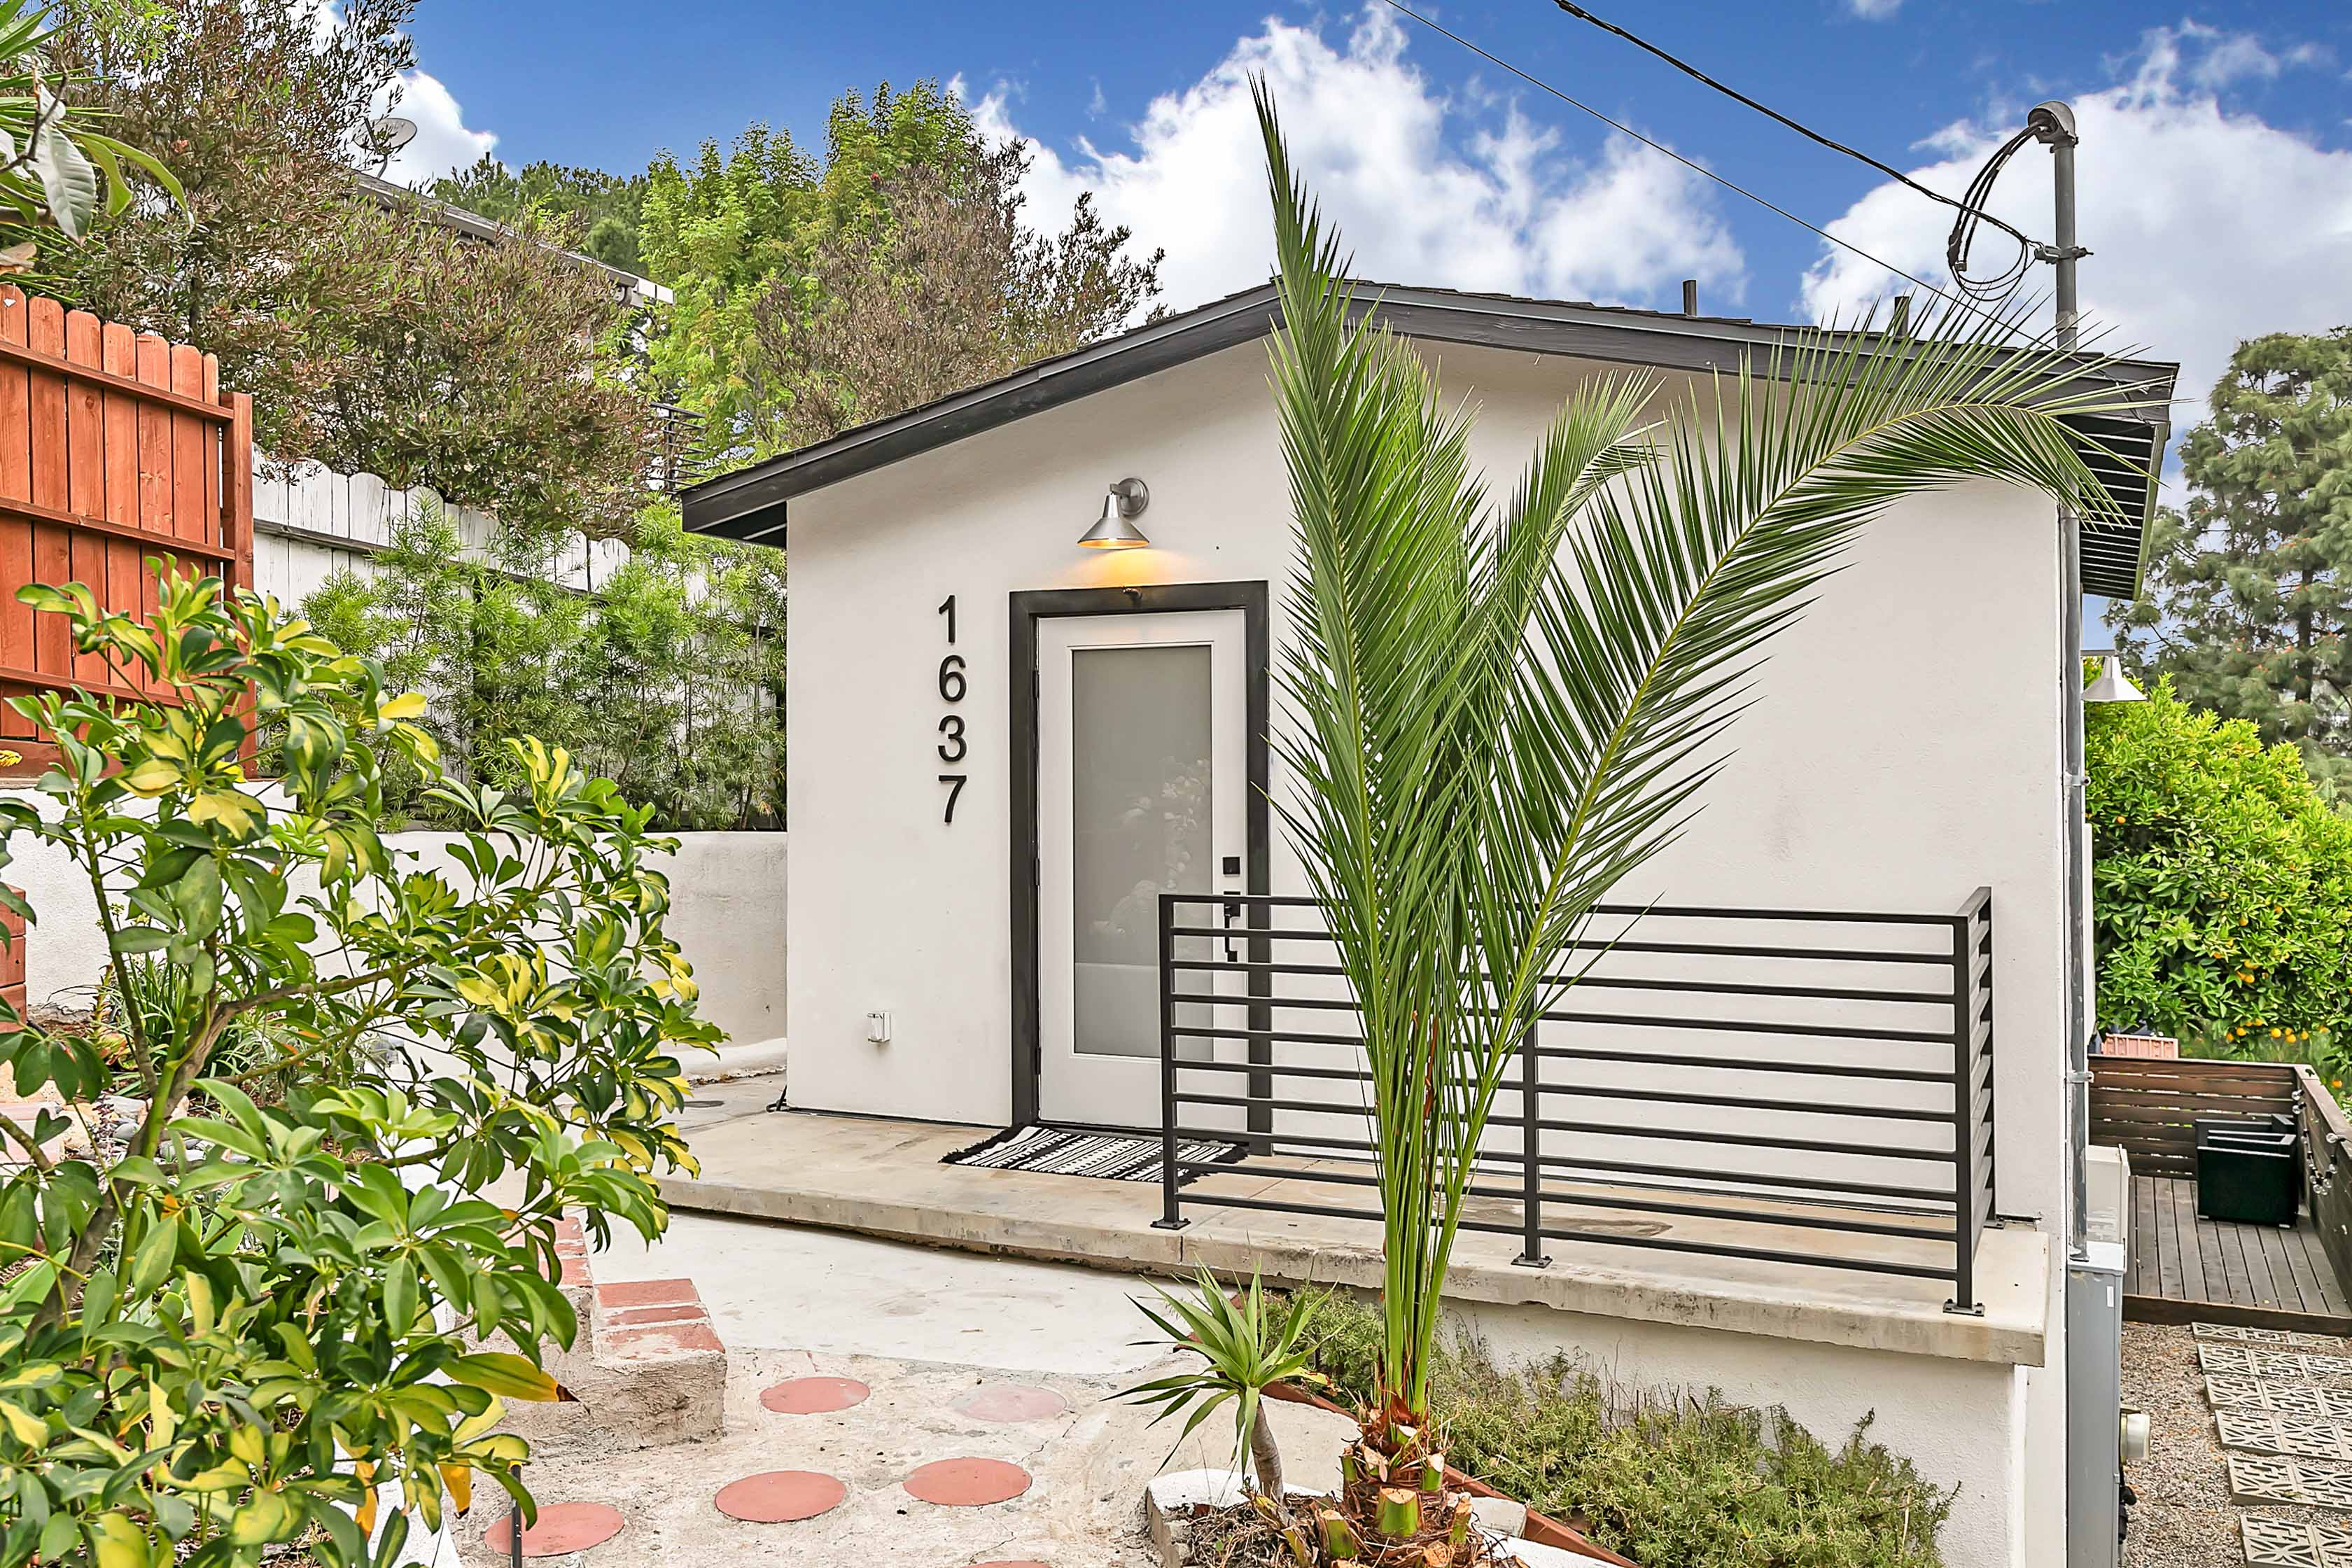 Charming Echo Park Gem! | Stunning Patio w/ Views! | Single Family Home | Prime Location  | 6 Month Lease